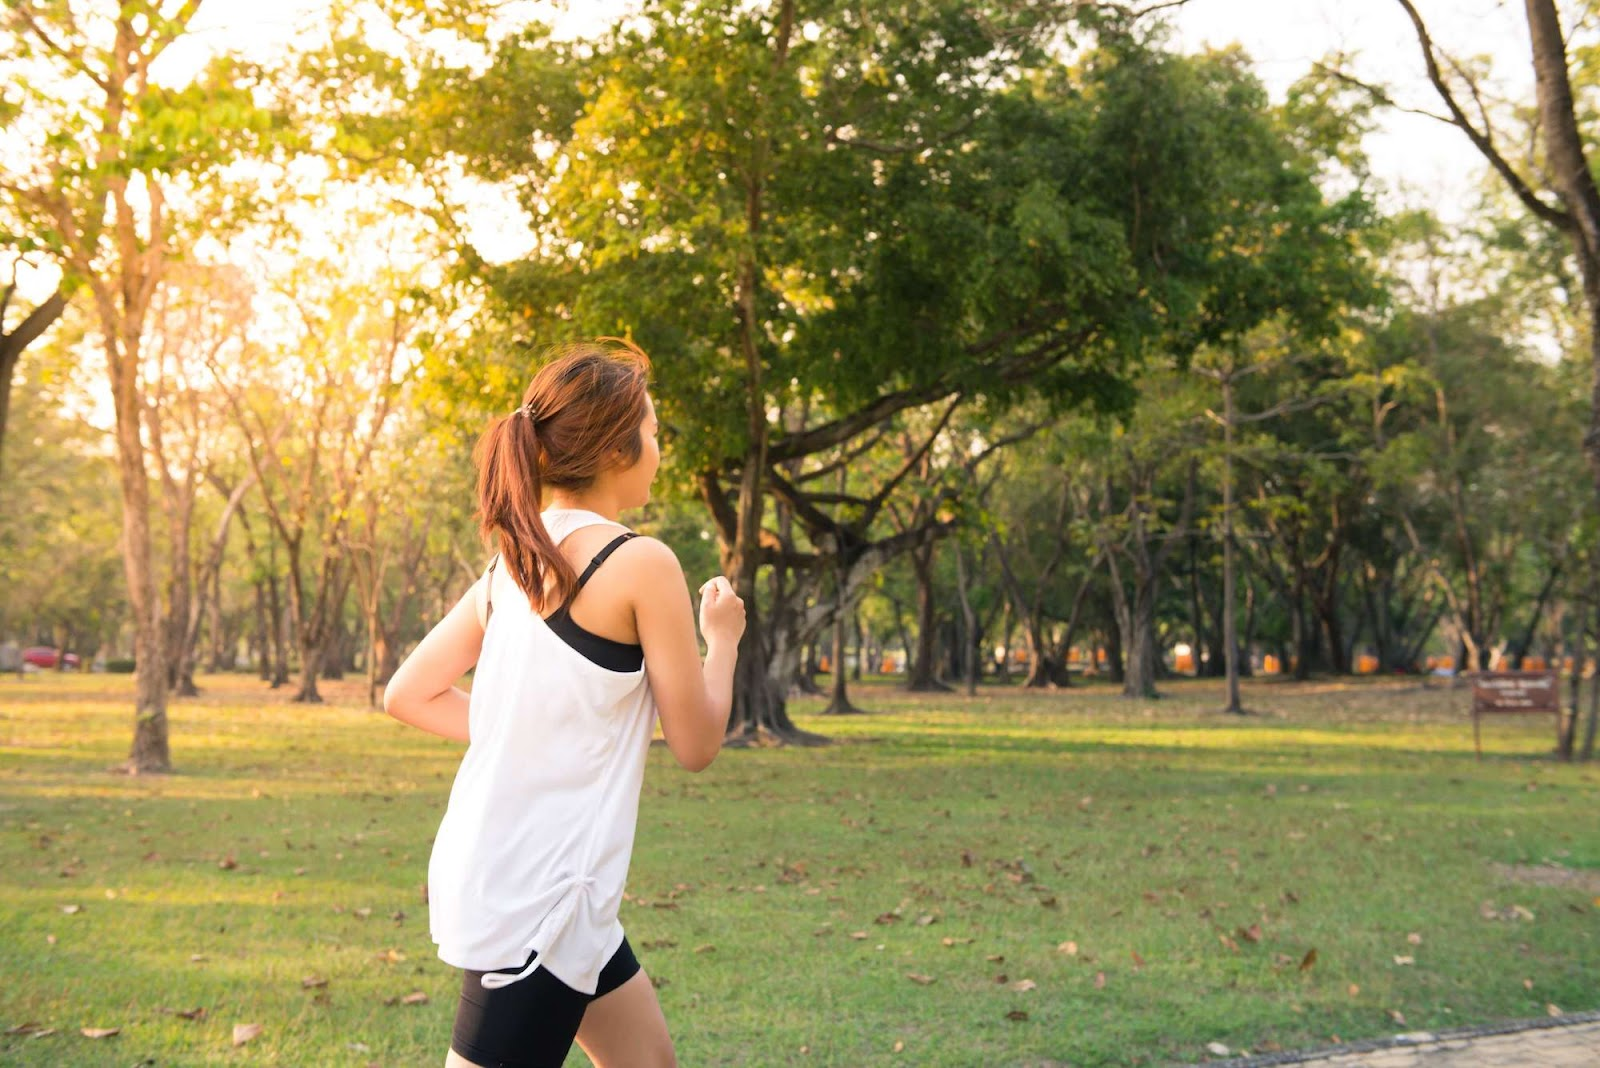 A woman running in a park